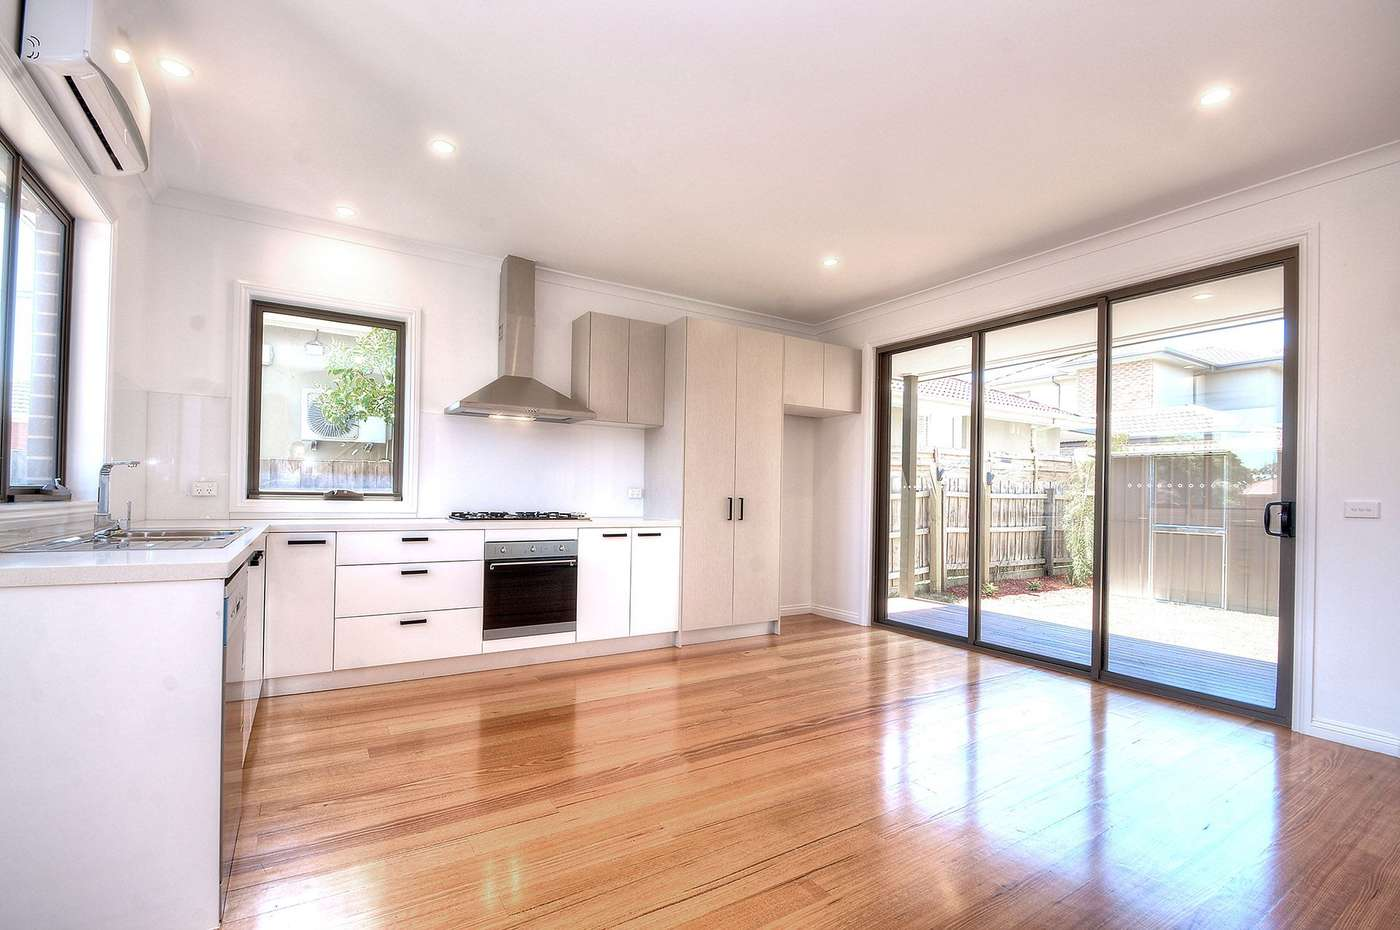 Main view of Homely townhouse listing, 1/21 Diosma Drive, Glen Waverley, VIC 3150